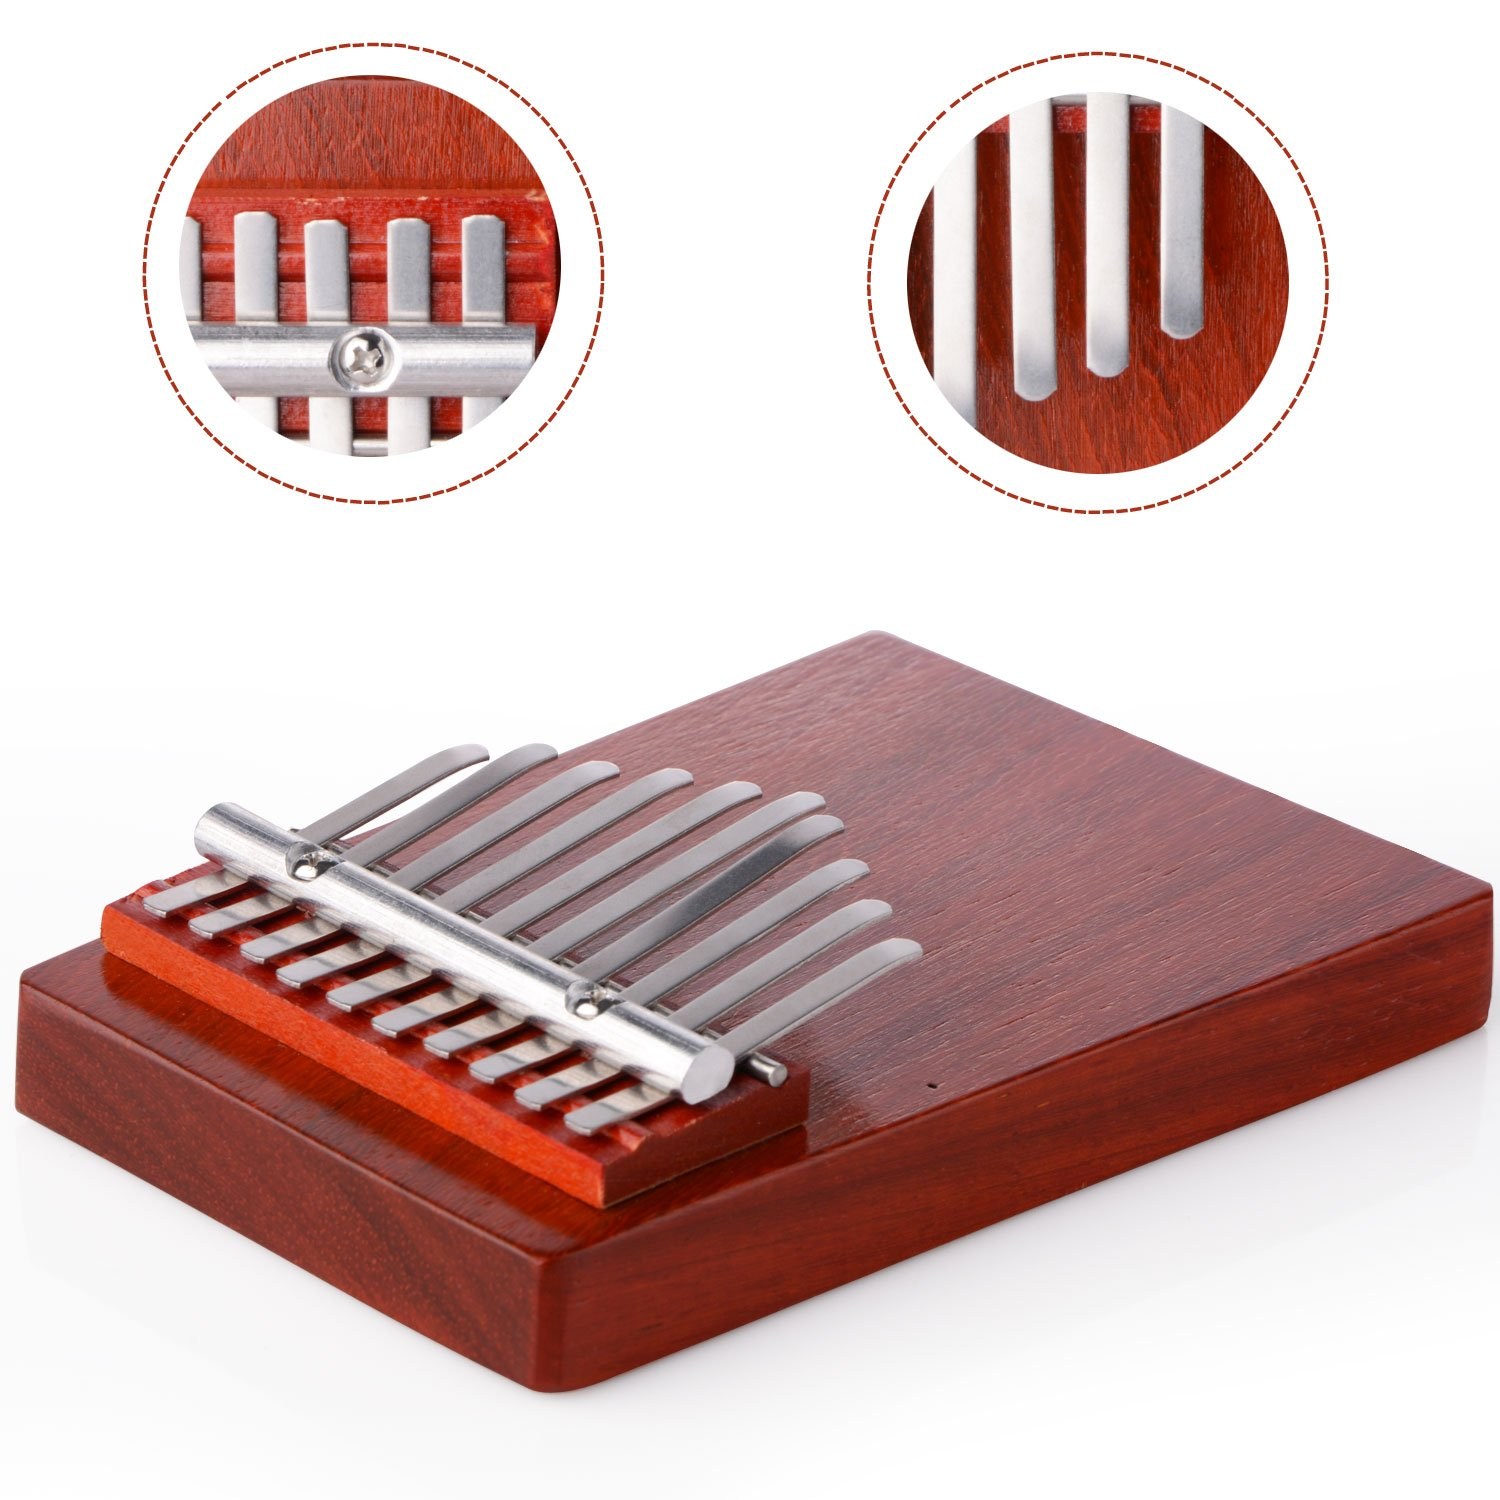 Thumb Piano,10 Key Finger Piano Kalimba Mbira Thumb Piano for Music Lover and Beginner (Annatto color)